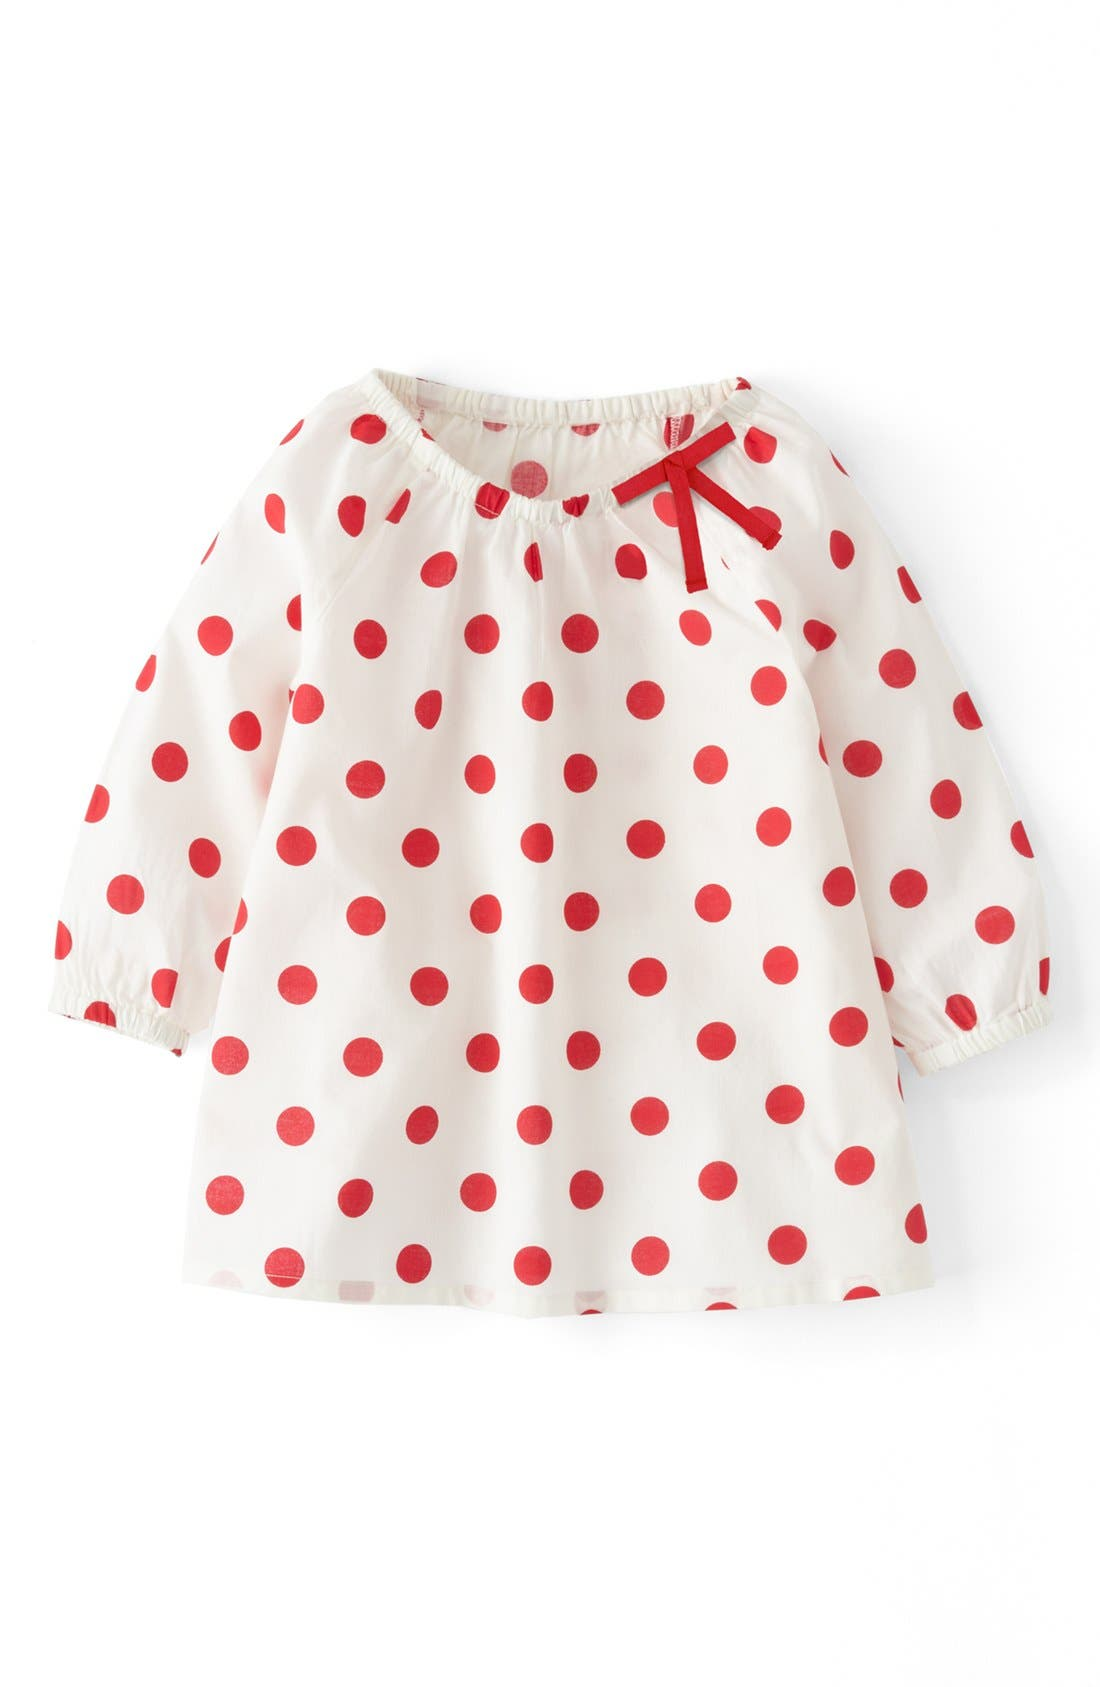 Alternate Image 1 Selected - Mini Boden 'Pretty' Woven Top (Little Girls & Big Girls)